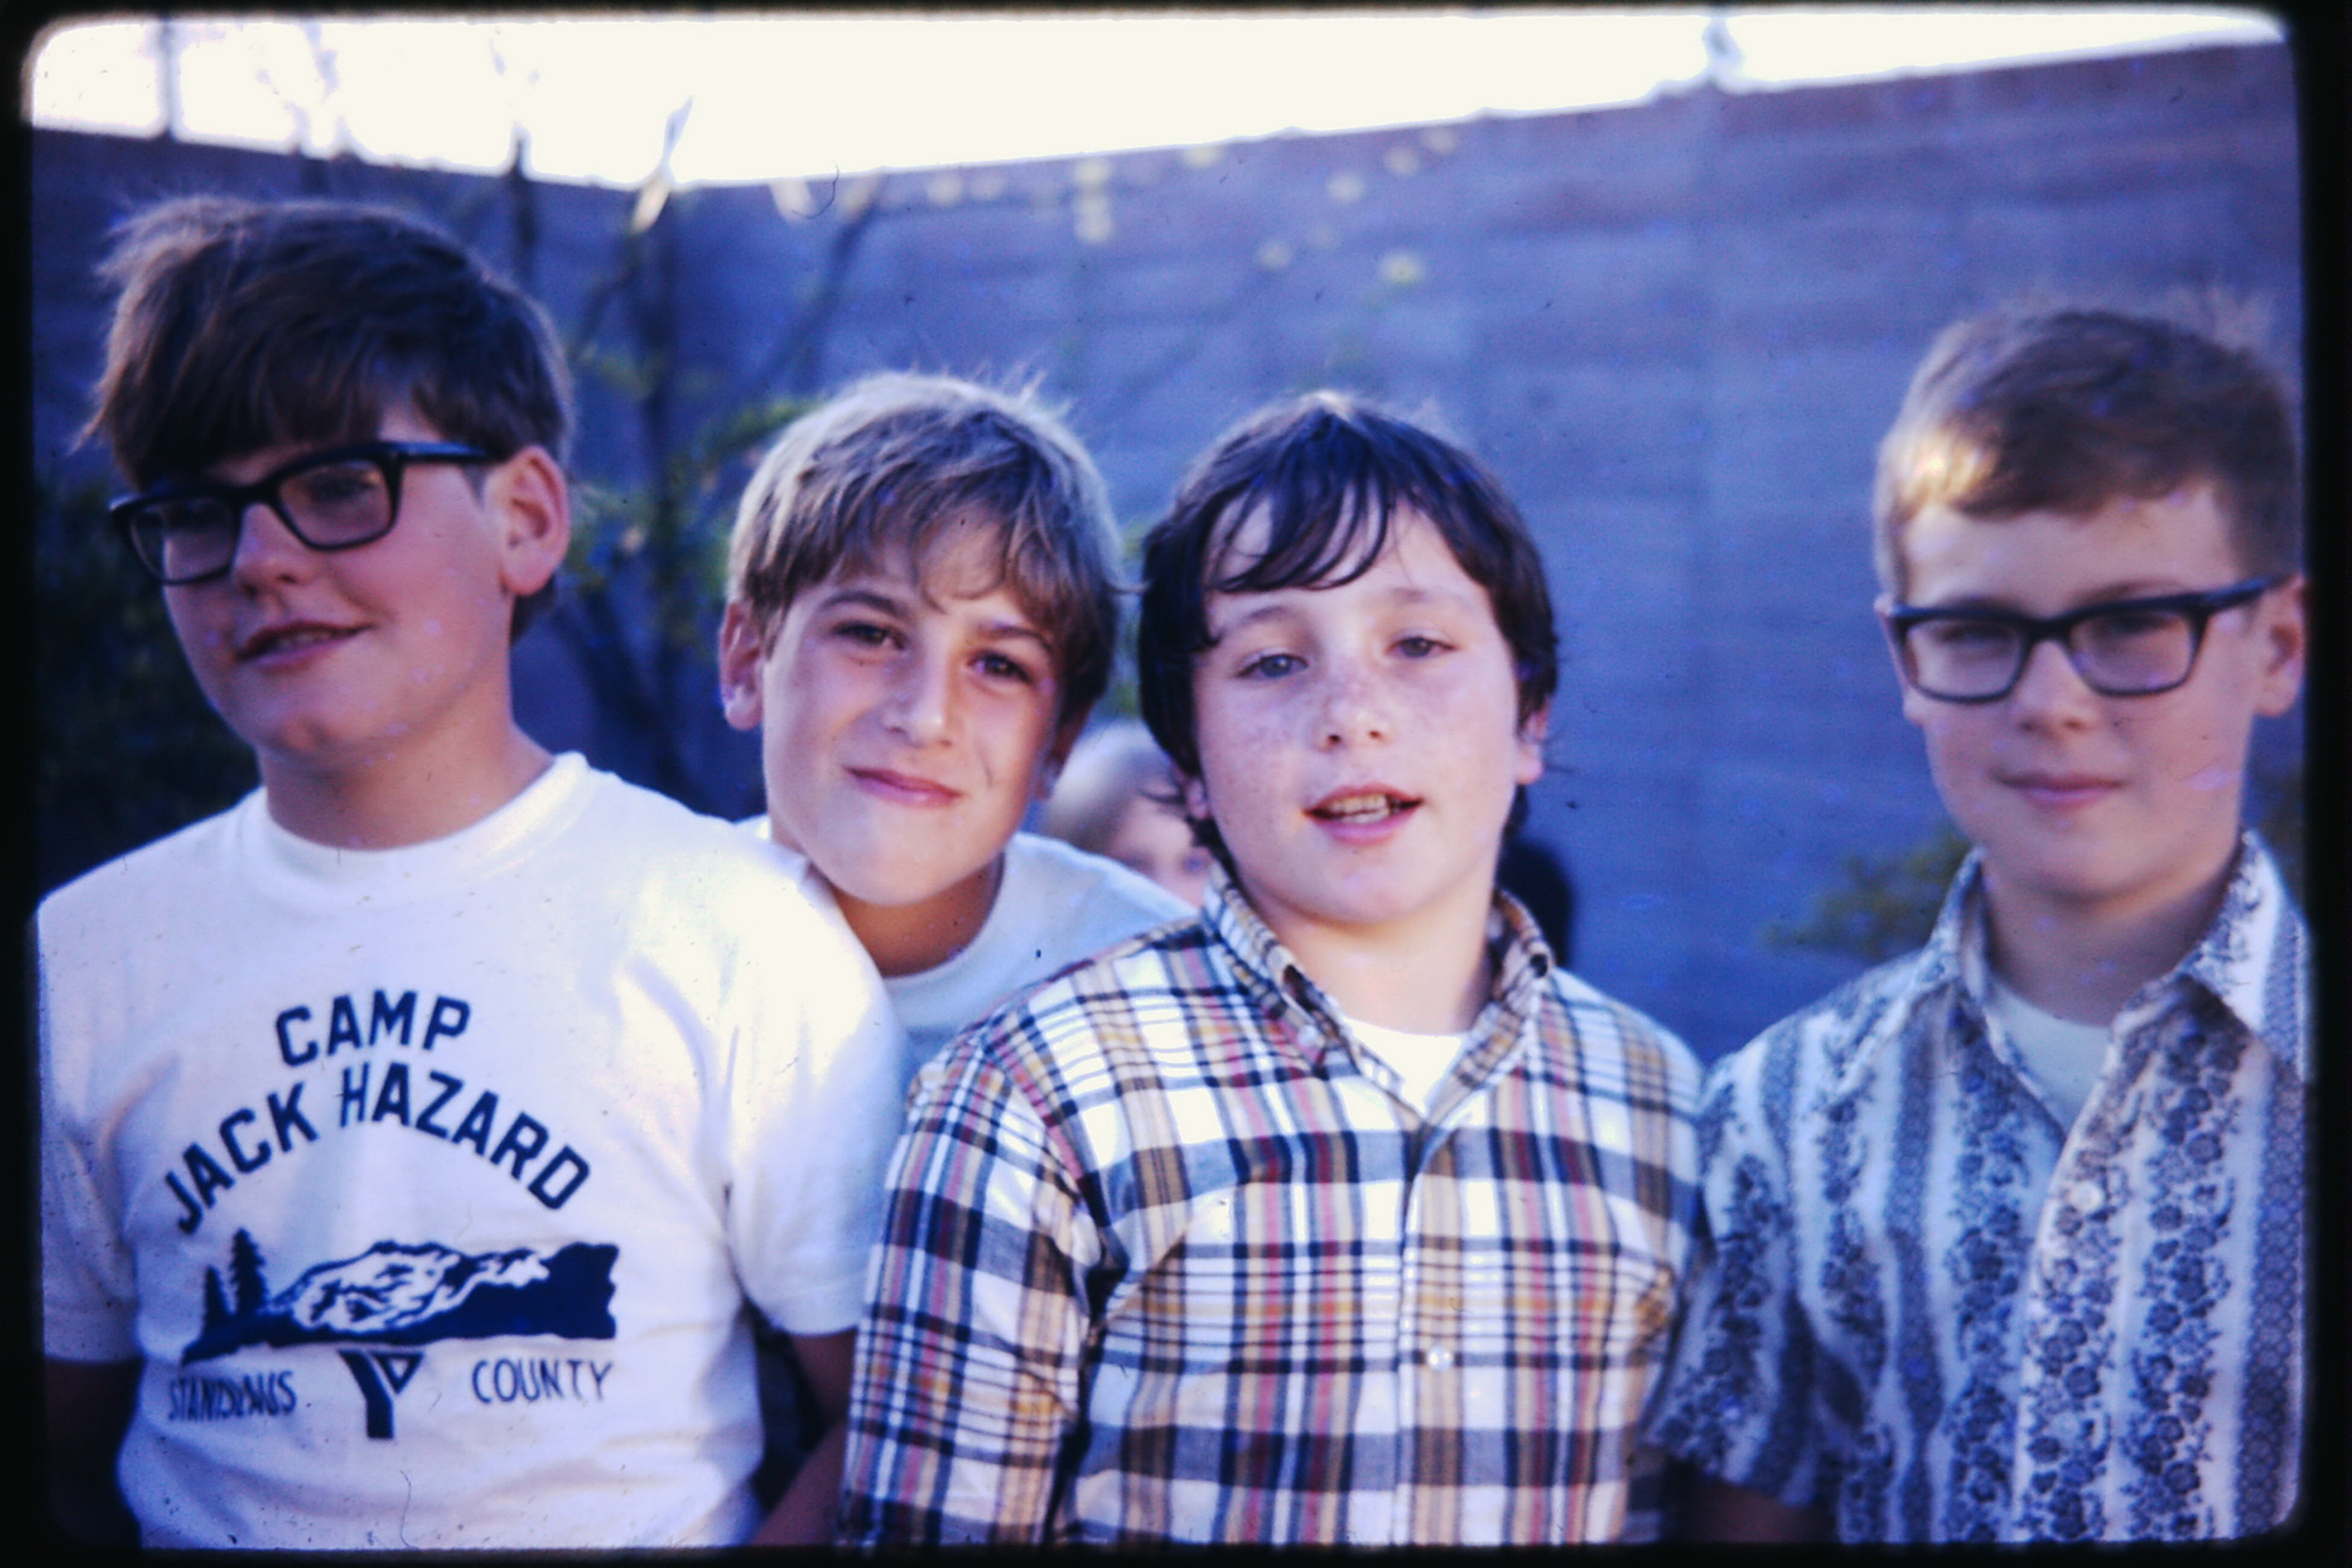 Close up of 4 boys with CJH shirt.jpg